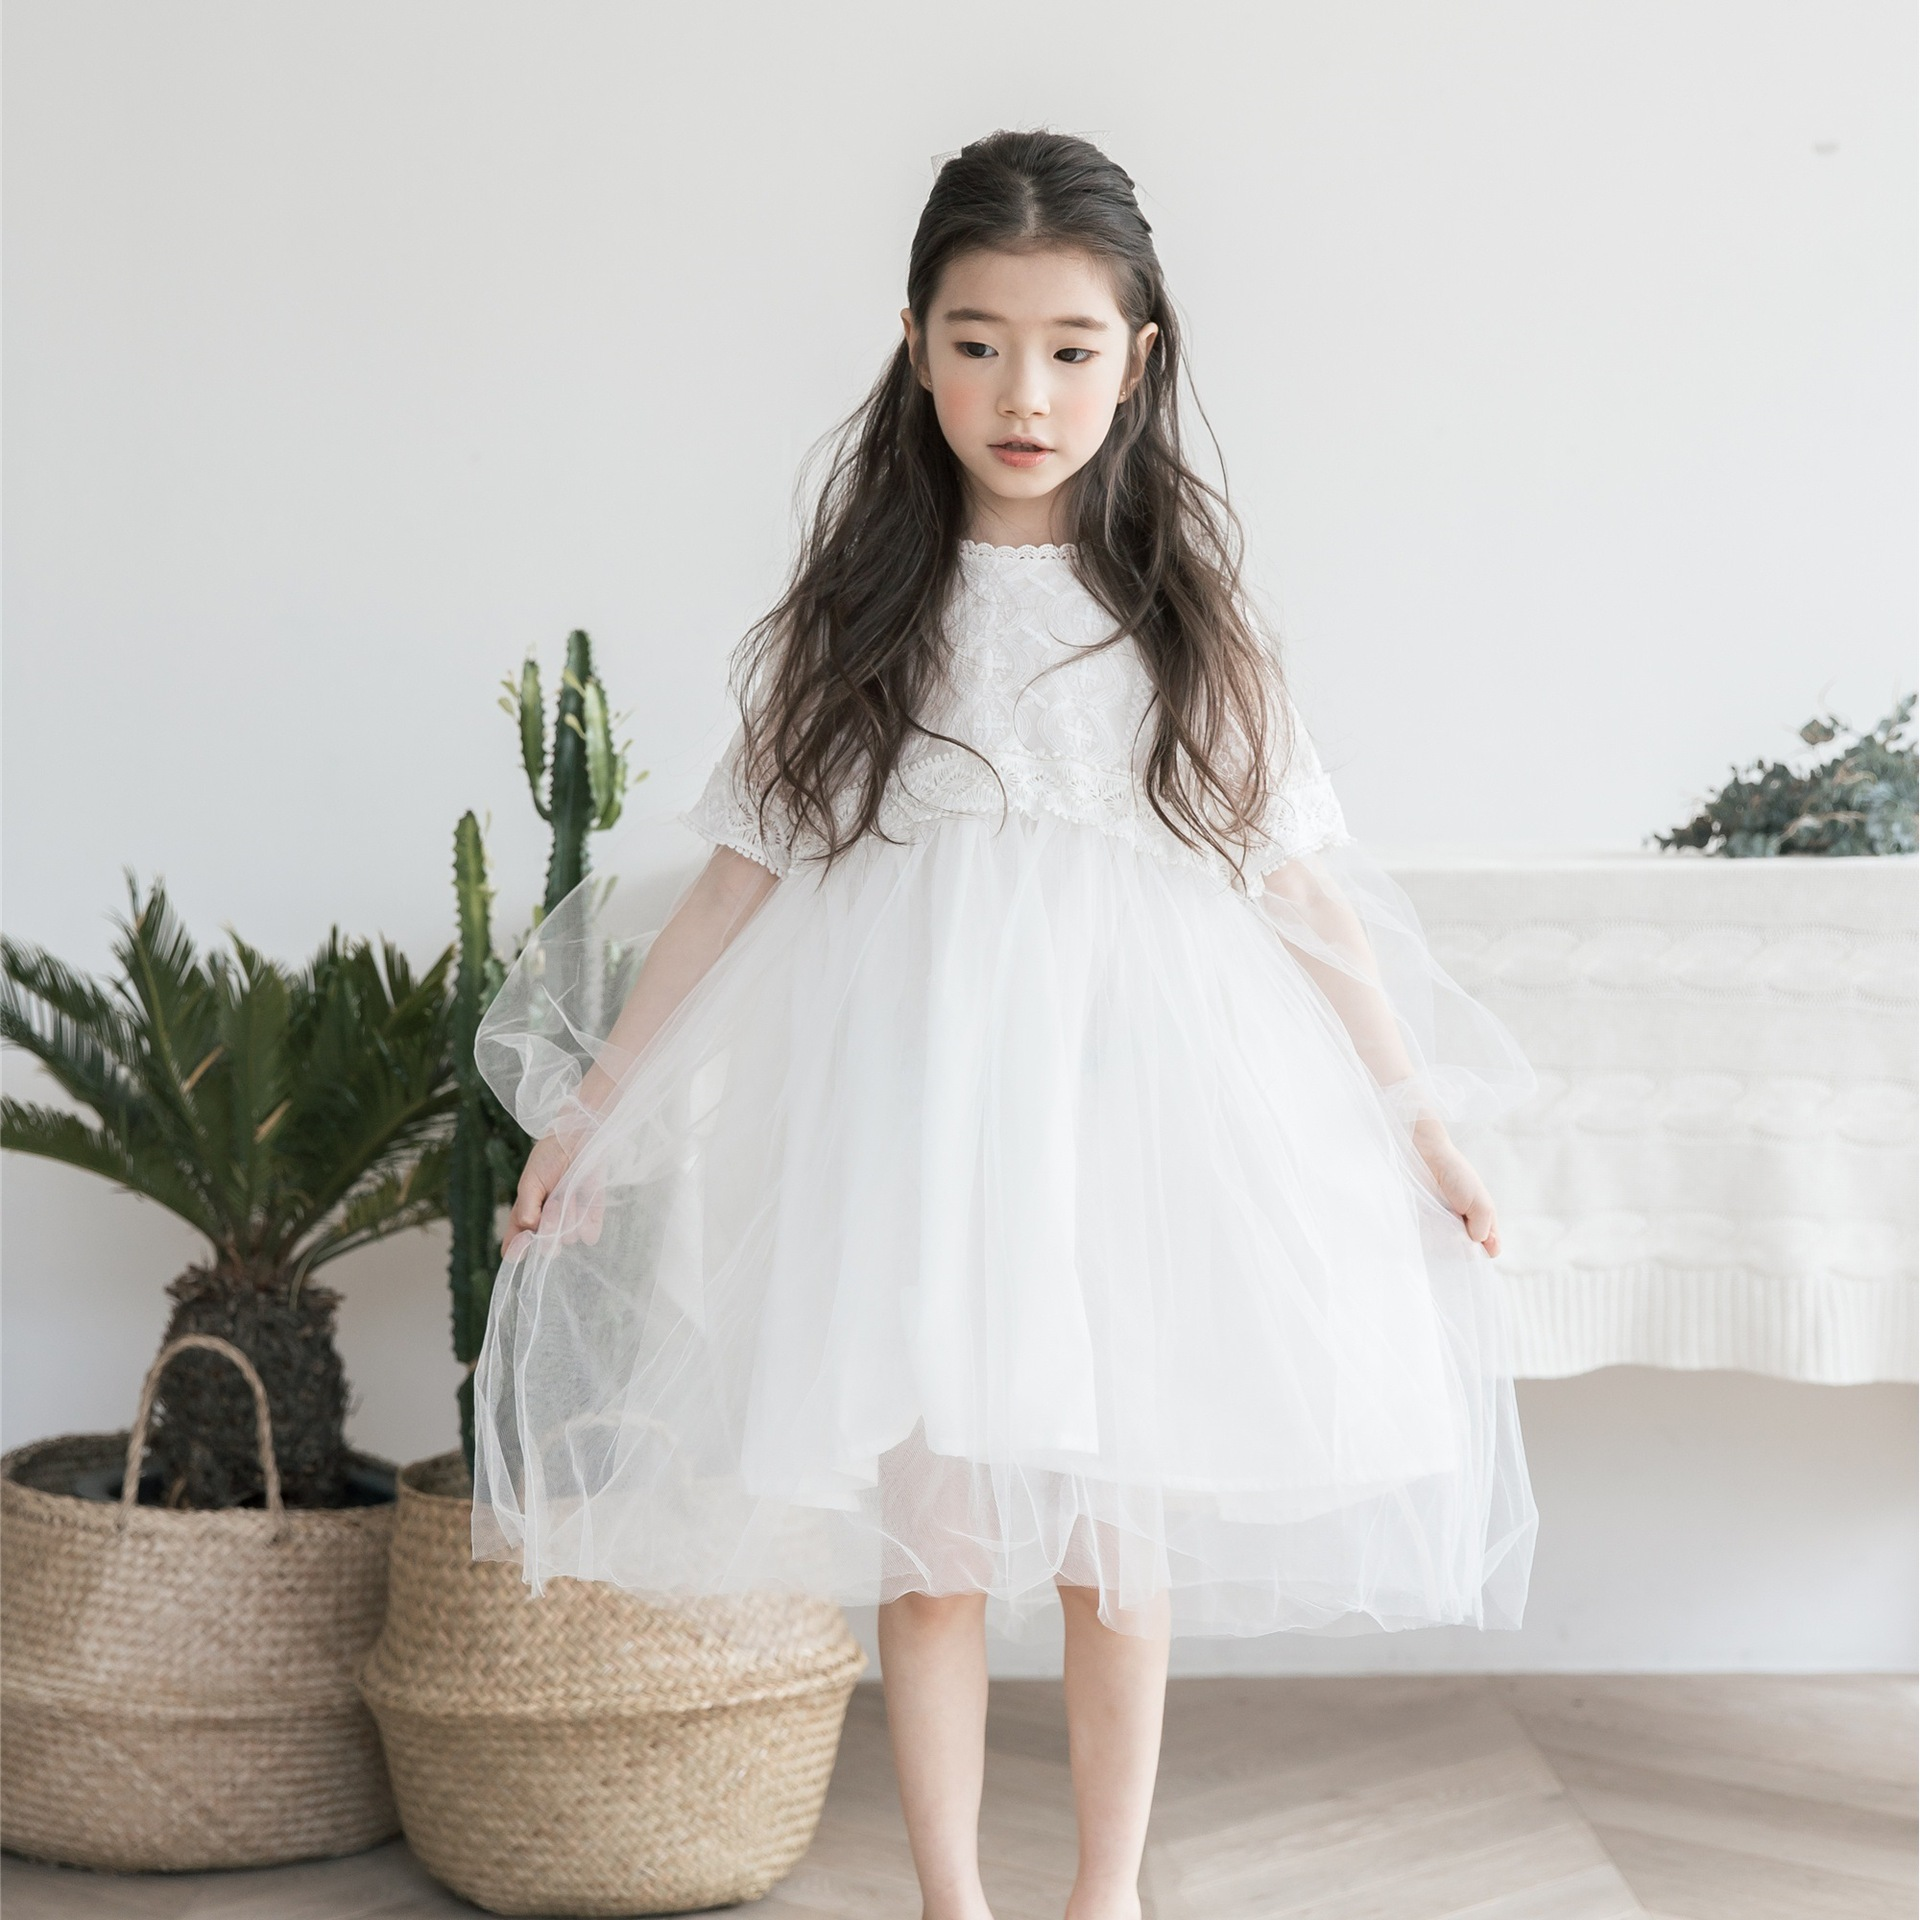 New Dresses For Girls Cute Lace Solid Long Lantern Sleeve Children Dress O-Neck Ball Grown Party Princess Kids Clothes CC856 5 16 y girls dress for autumn 2018 kids print mesh black red o neck party dresses girls cute princess dress long sleeve m510a